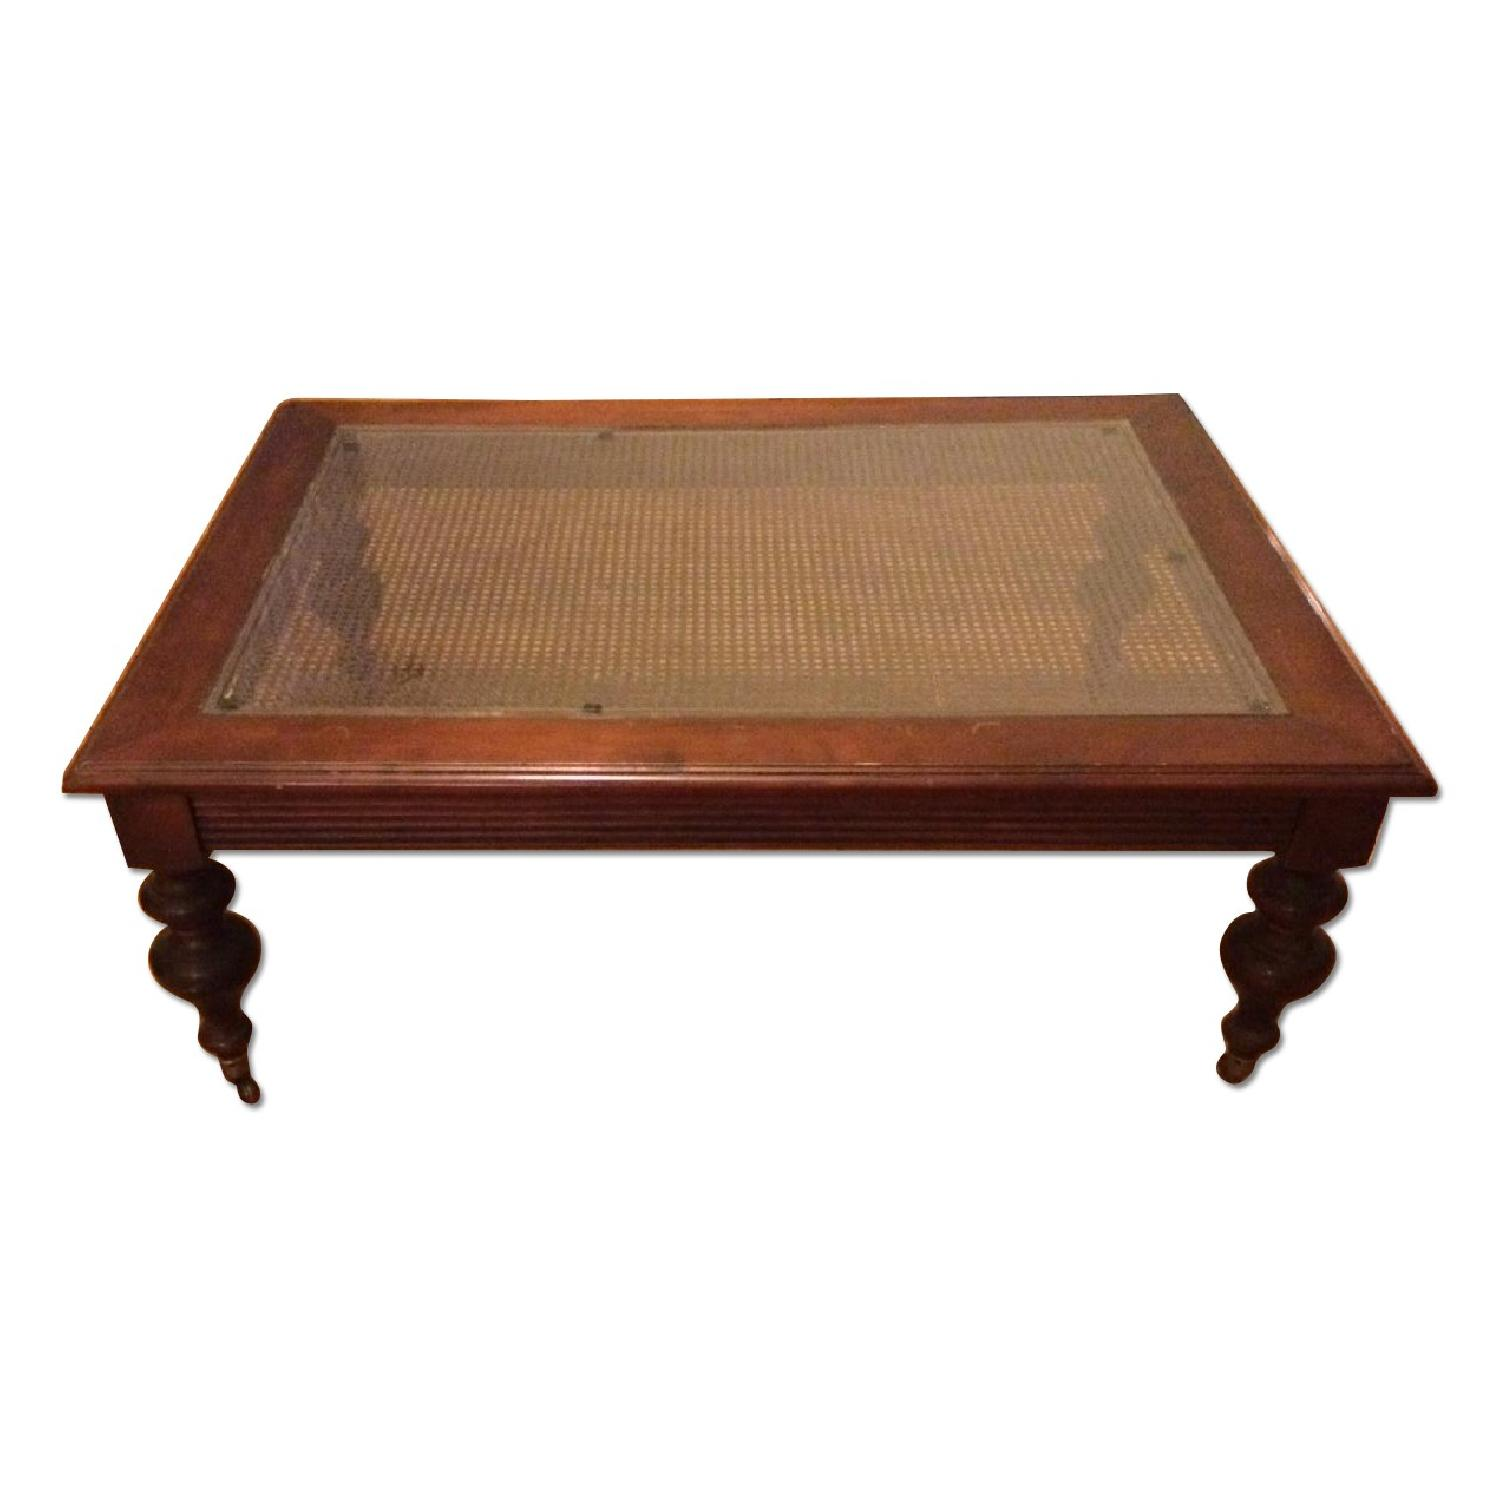 Ethan Allen British Classics Collection Coffee Table With Glass Top